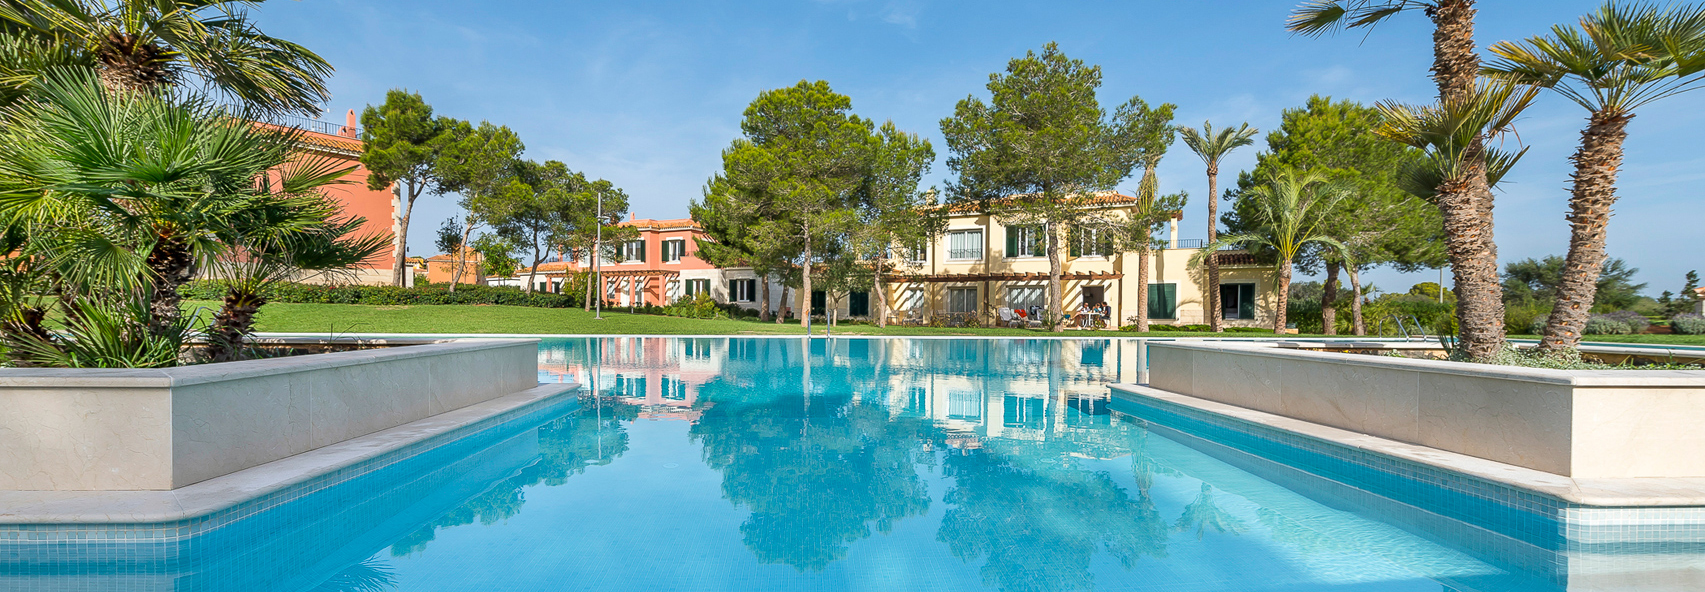 Luxury homes for sale in Mallorca Es Trenc | Casas Es Trenc - Ave ...